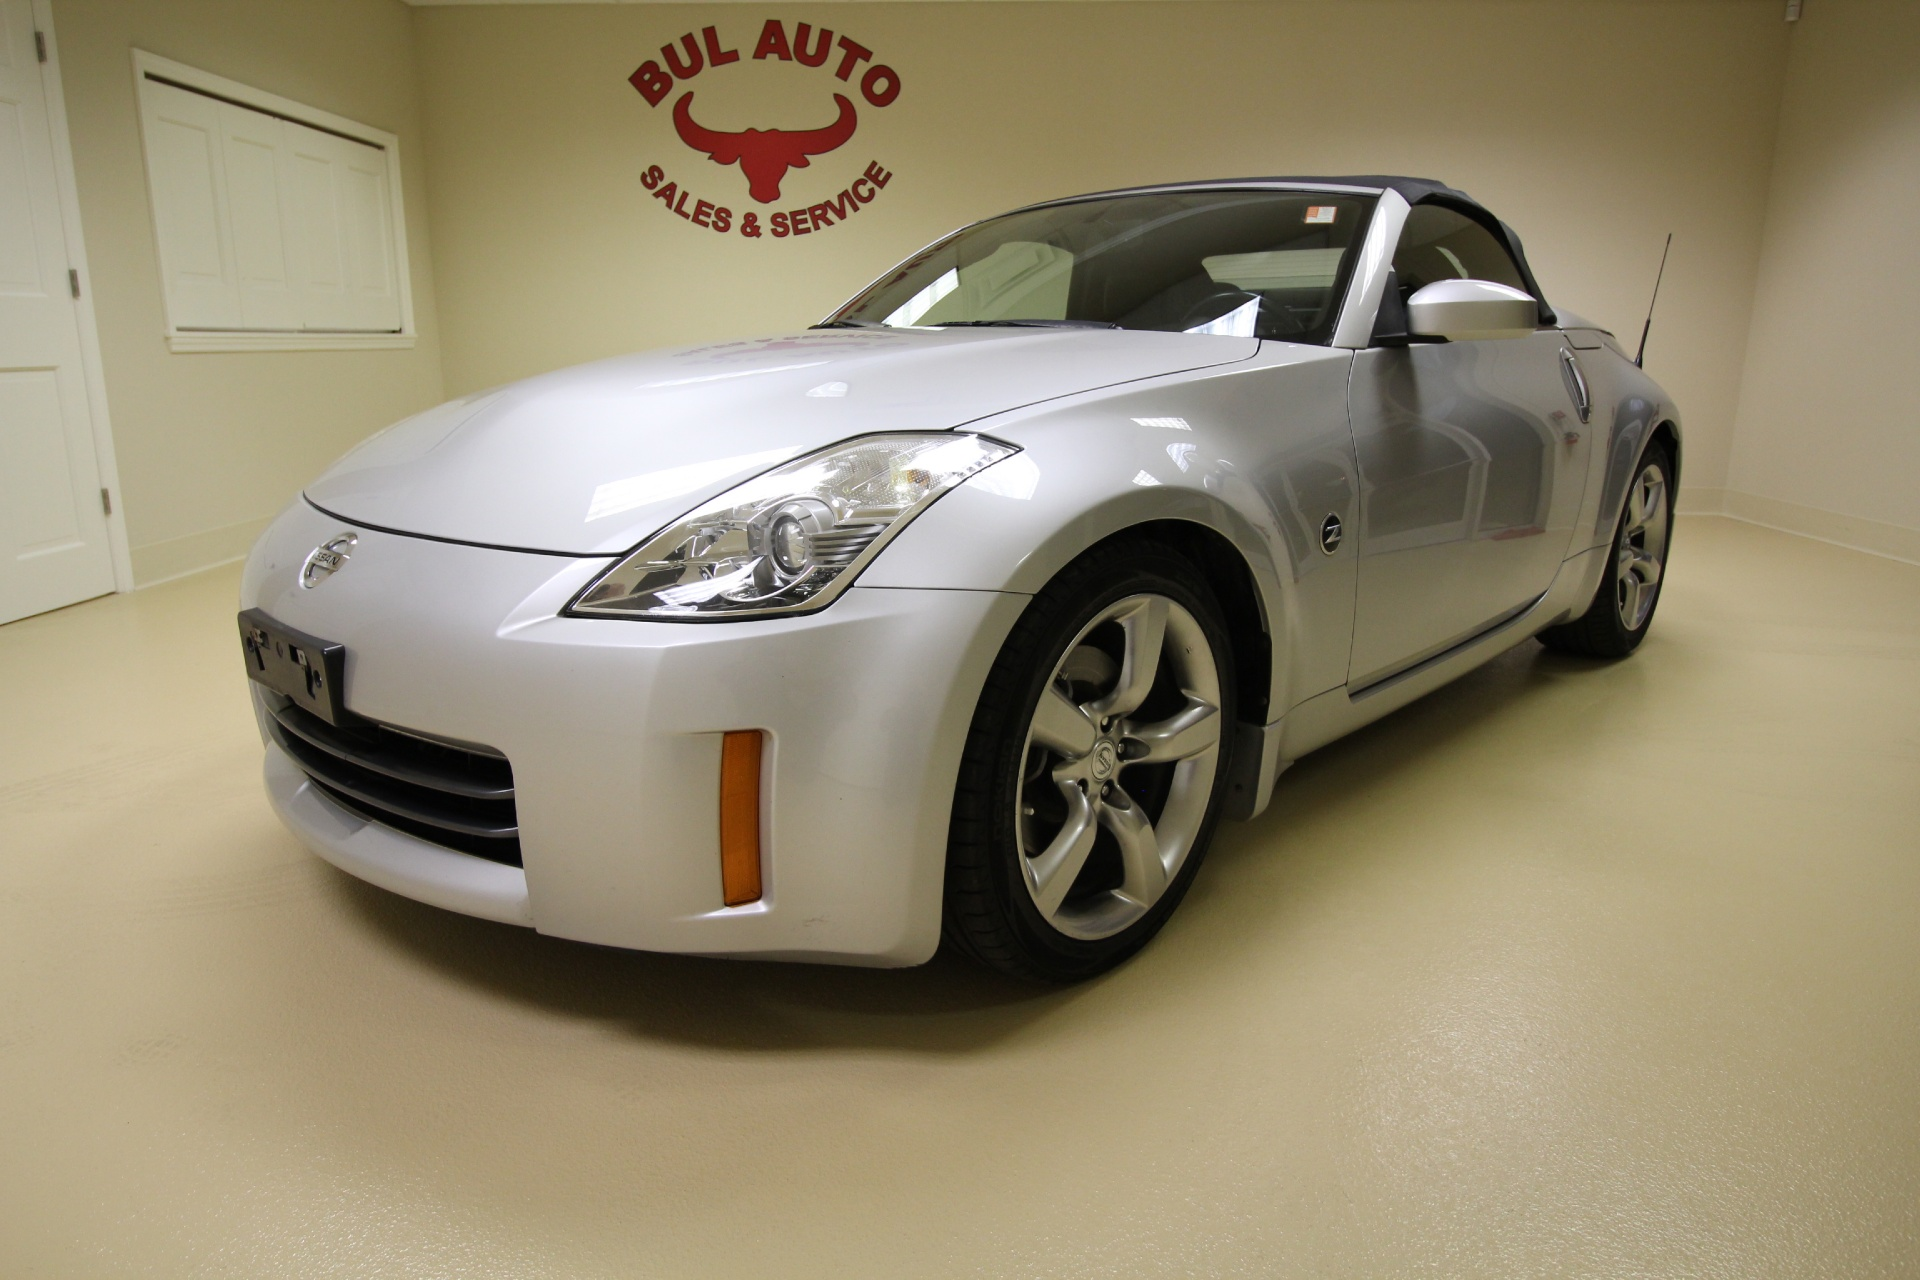 2007 nissan 350z grand touring roadster super clean low miles automatic stock 16101 for sale. Black Bedroom Furniture Sets. Home Design Ideas